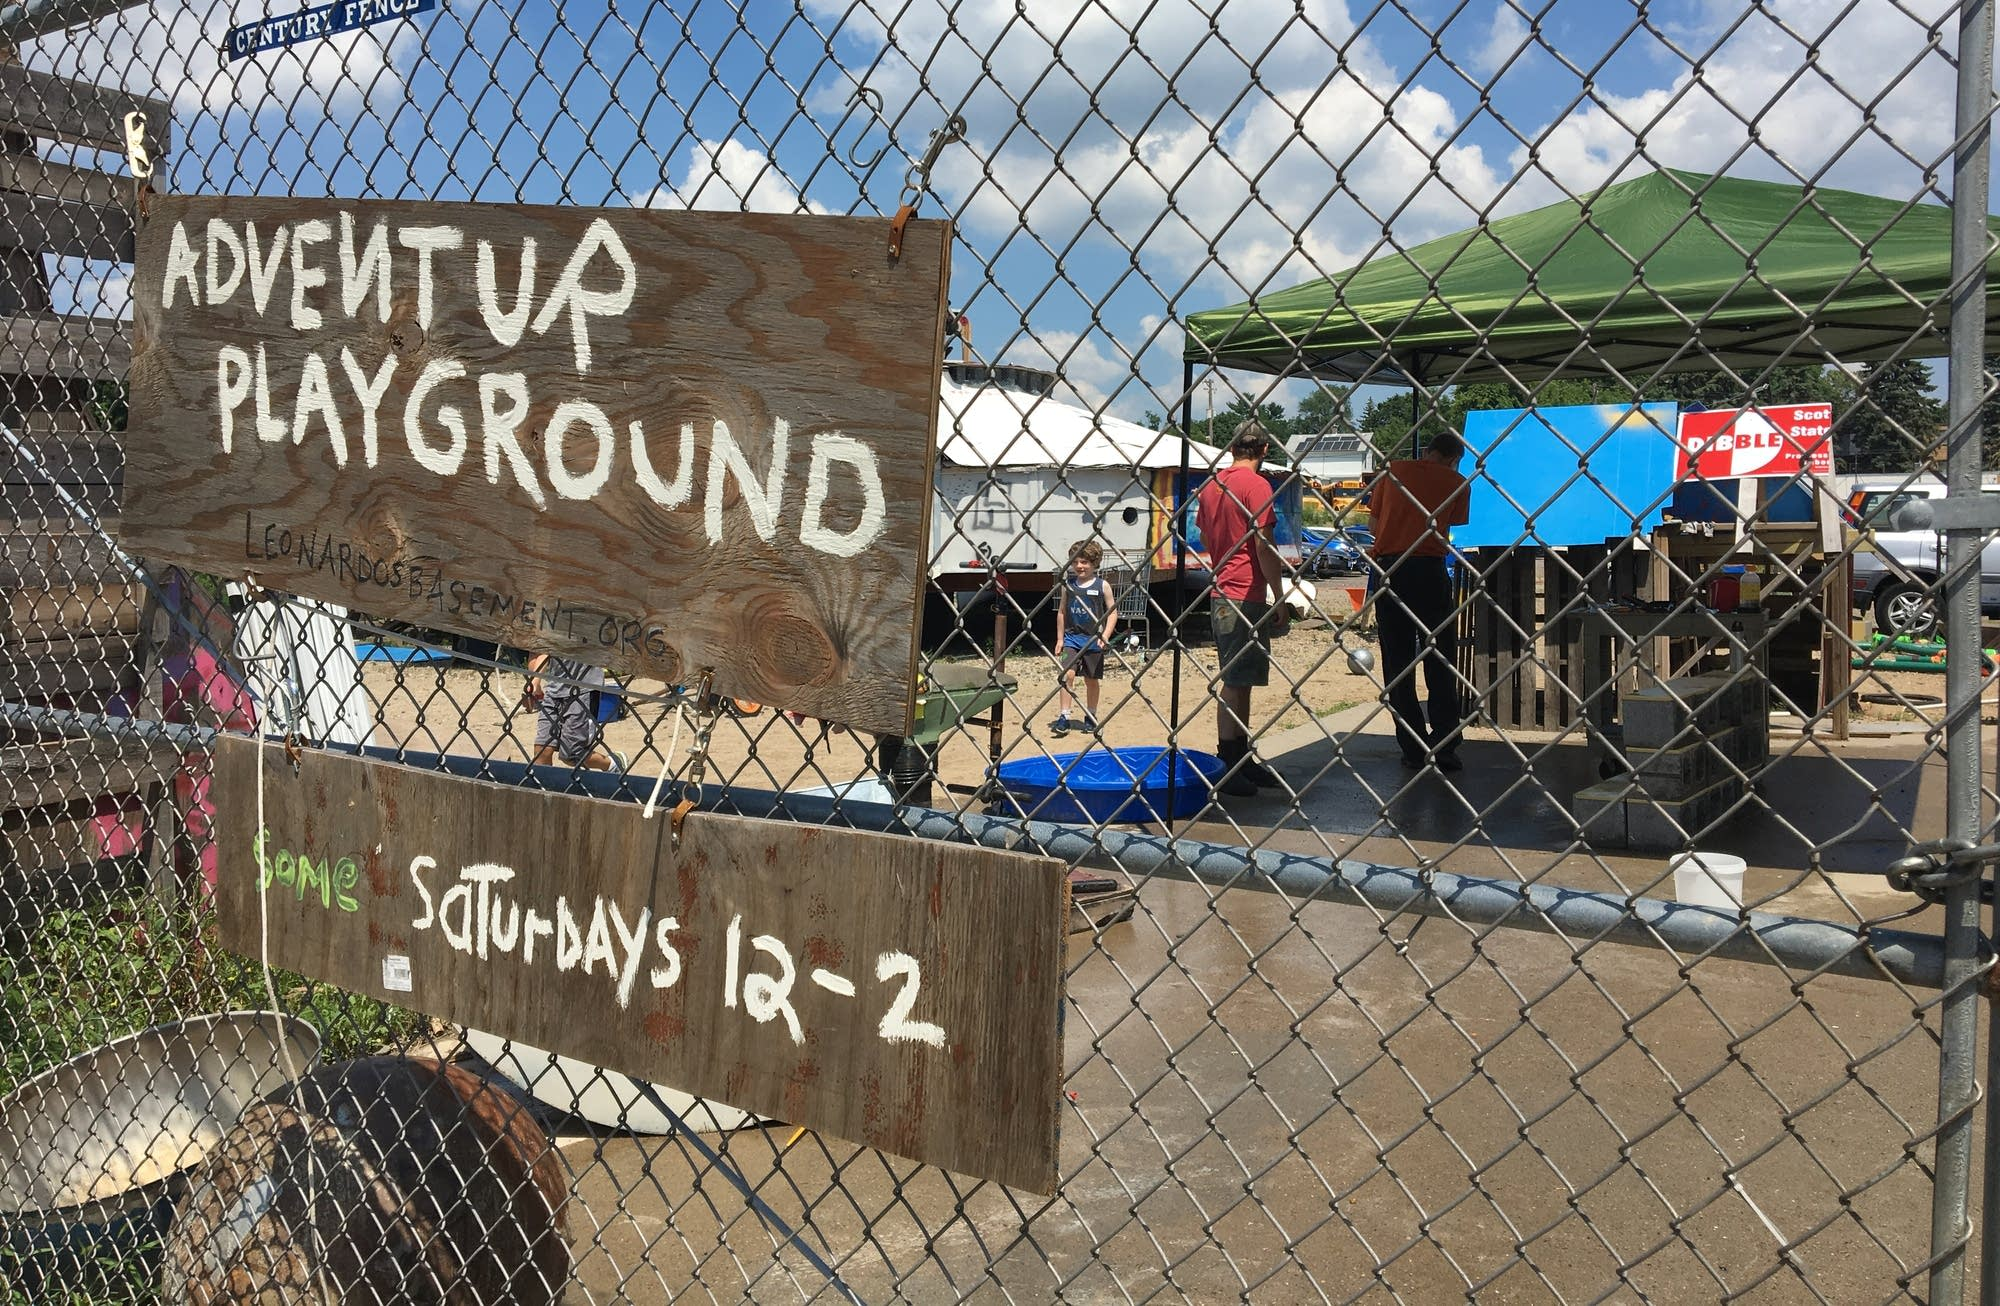 The Adventure Playground lies behind a chain-link fence in Mpls.